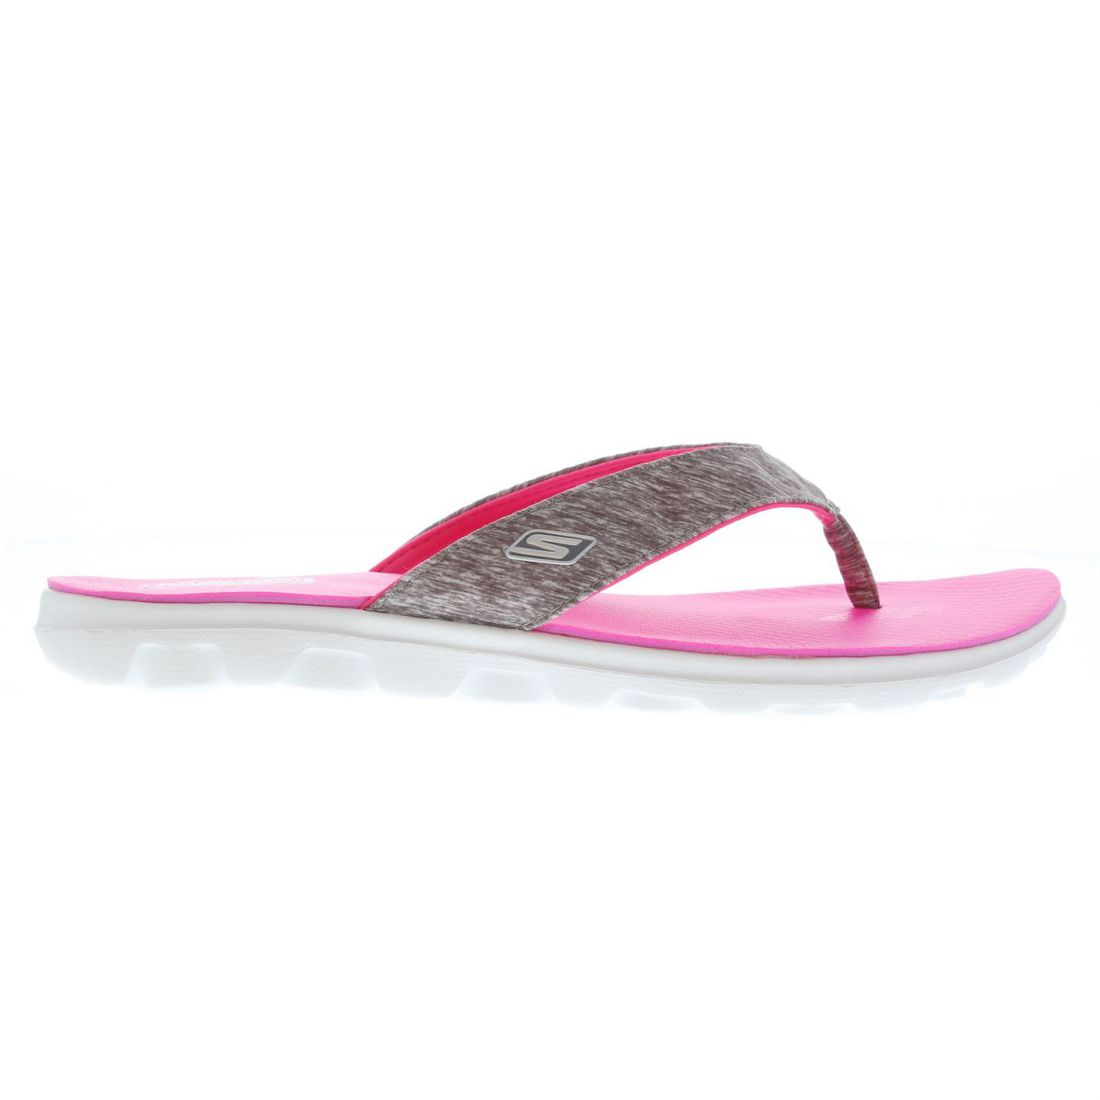 1507640c229b Skechers On The Go Flow Flip Flops Ladies Lightweight Strap Toe Post ...